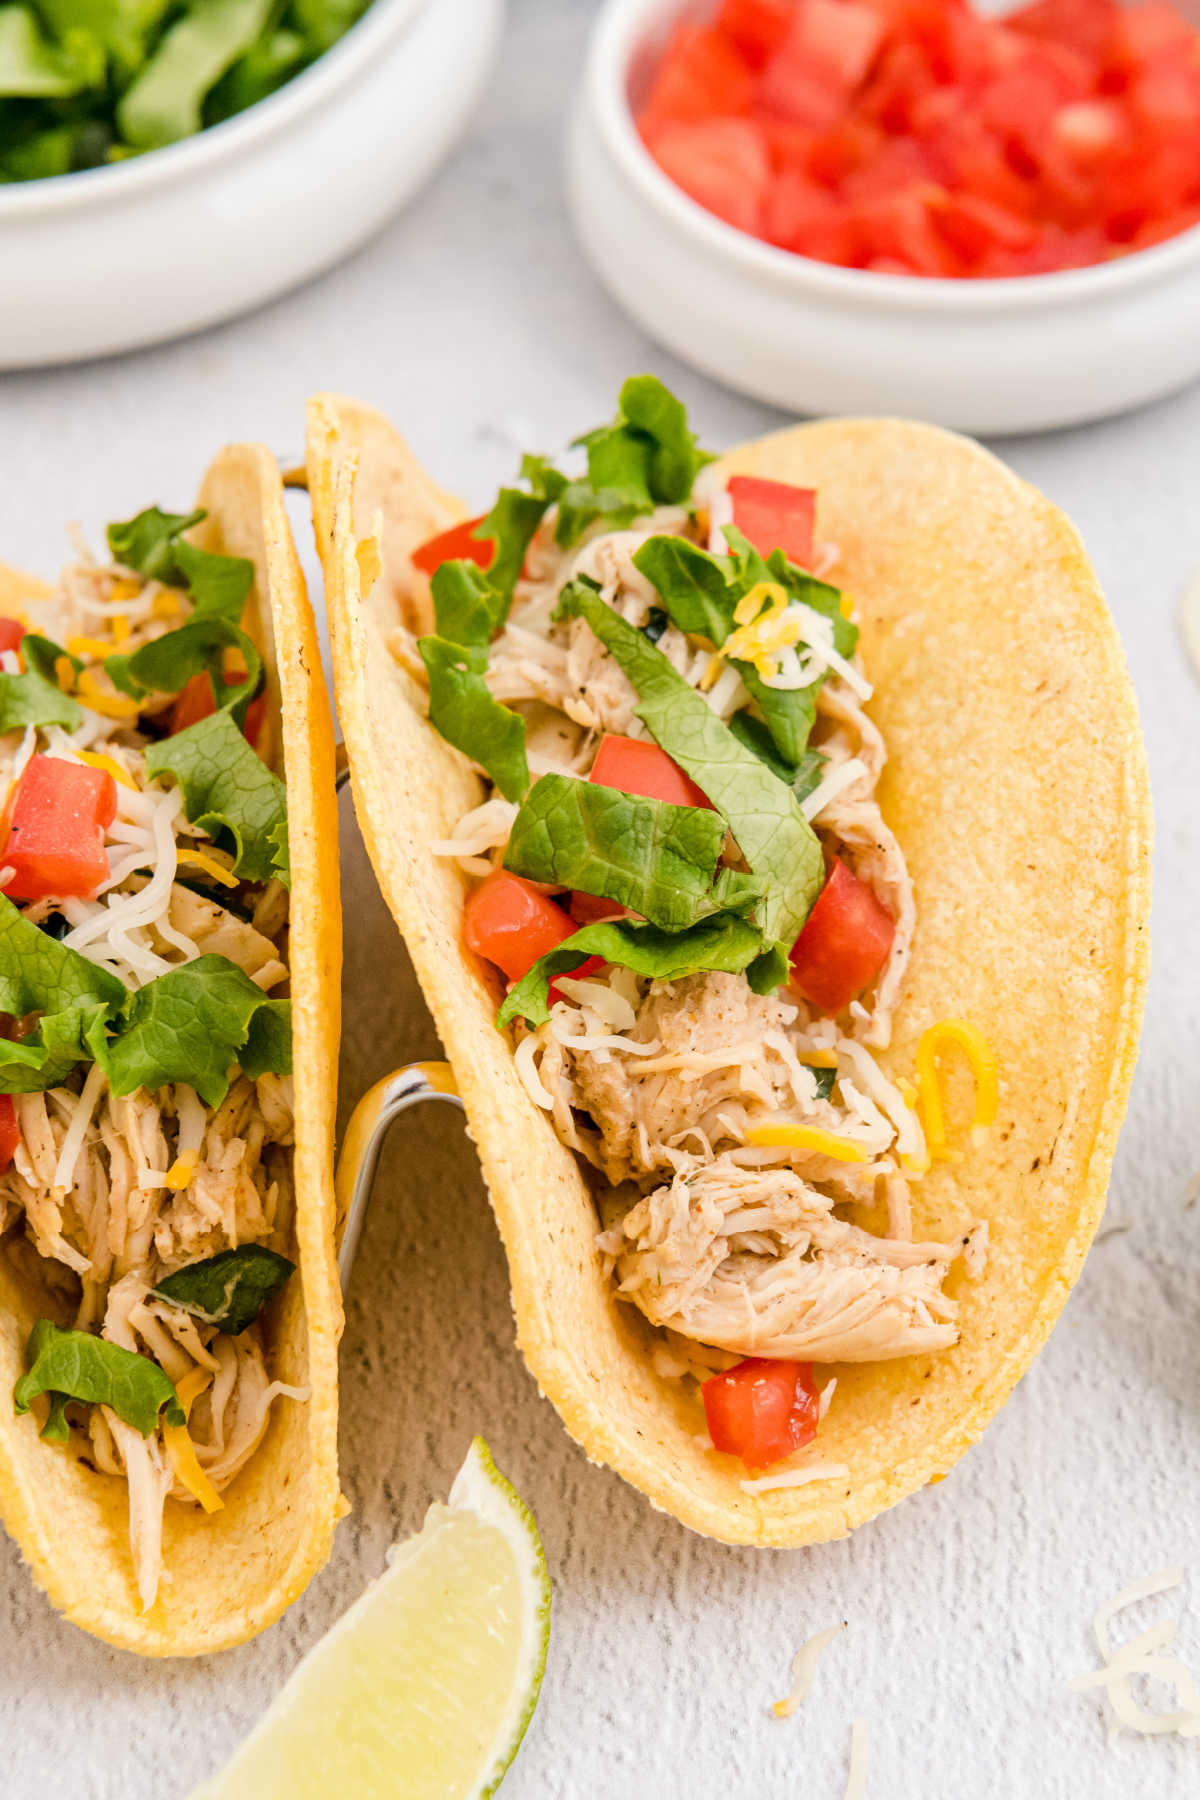 These Crockpot Shredded Chicken Tacos are my go-to weeknight dinner. They're juicy, flavorful, and SO easy to make. via @foodfolksandfun